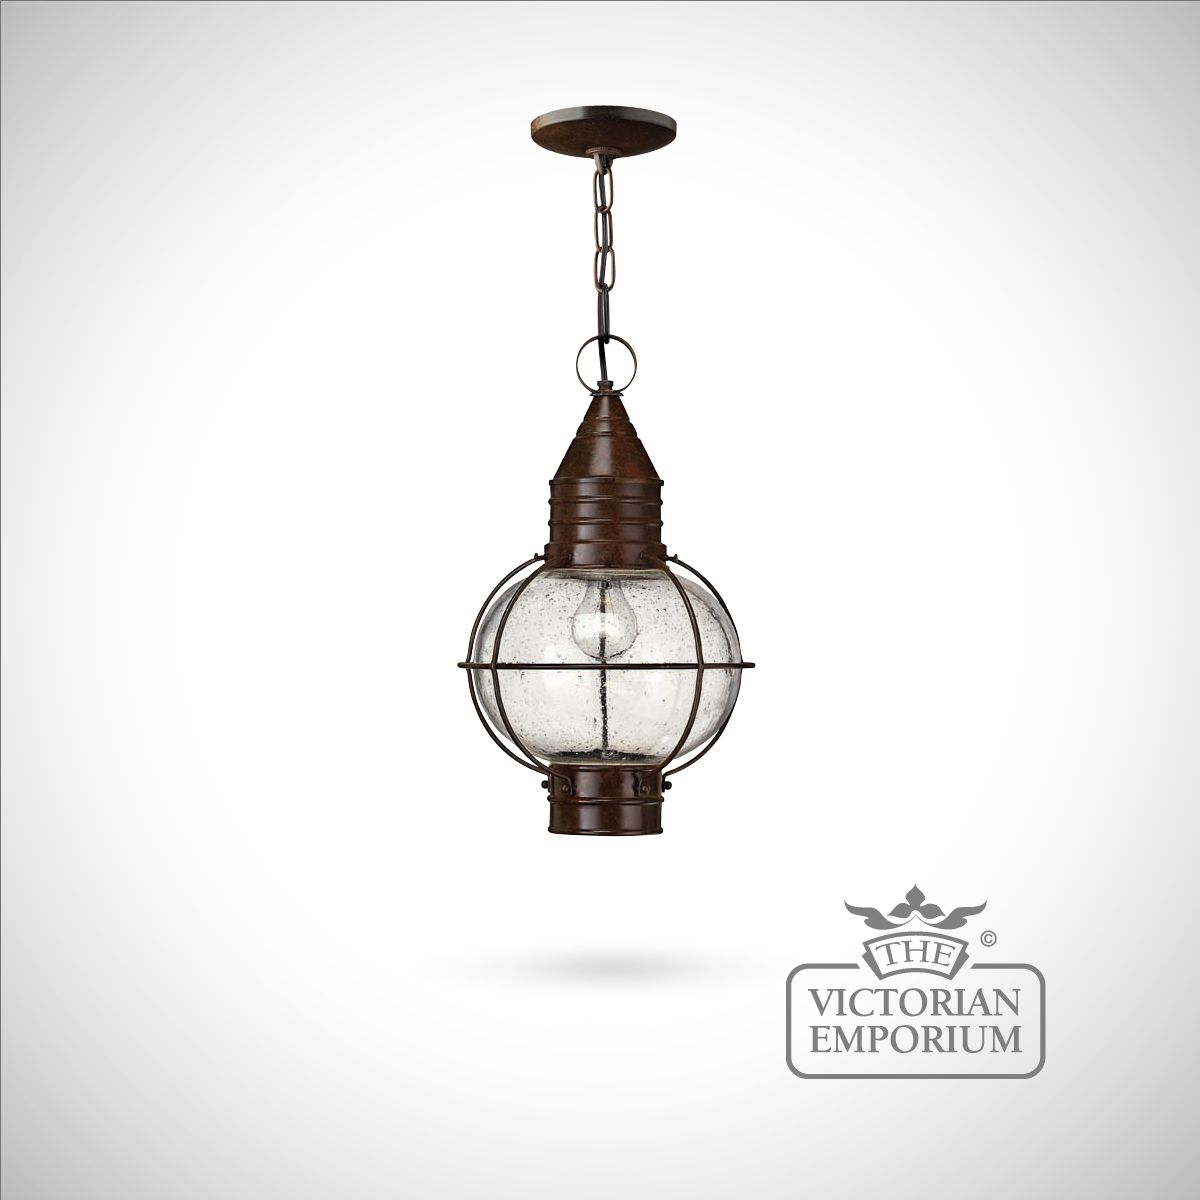 Onion ceiling lantern in sienna bronze large classic onion ceiling lantern in sienna bronze large aloadofball Image collections